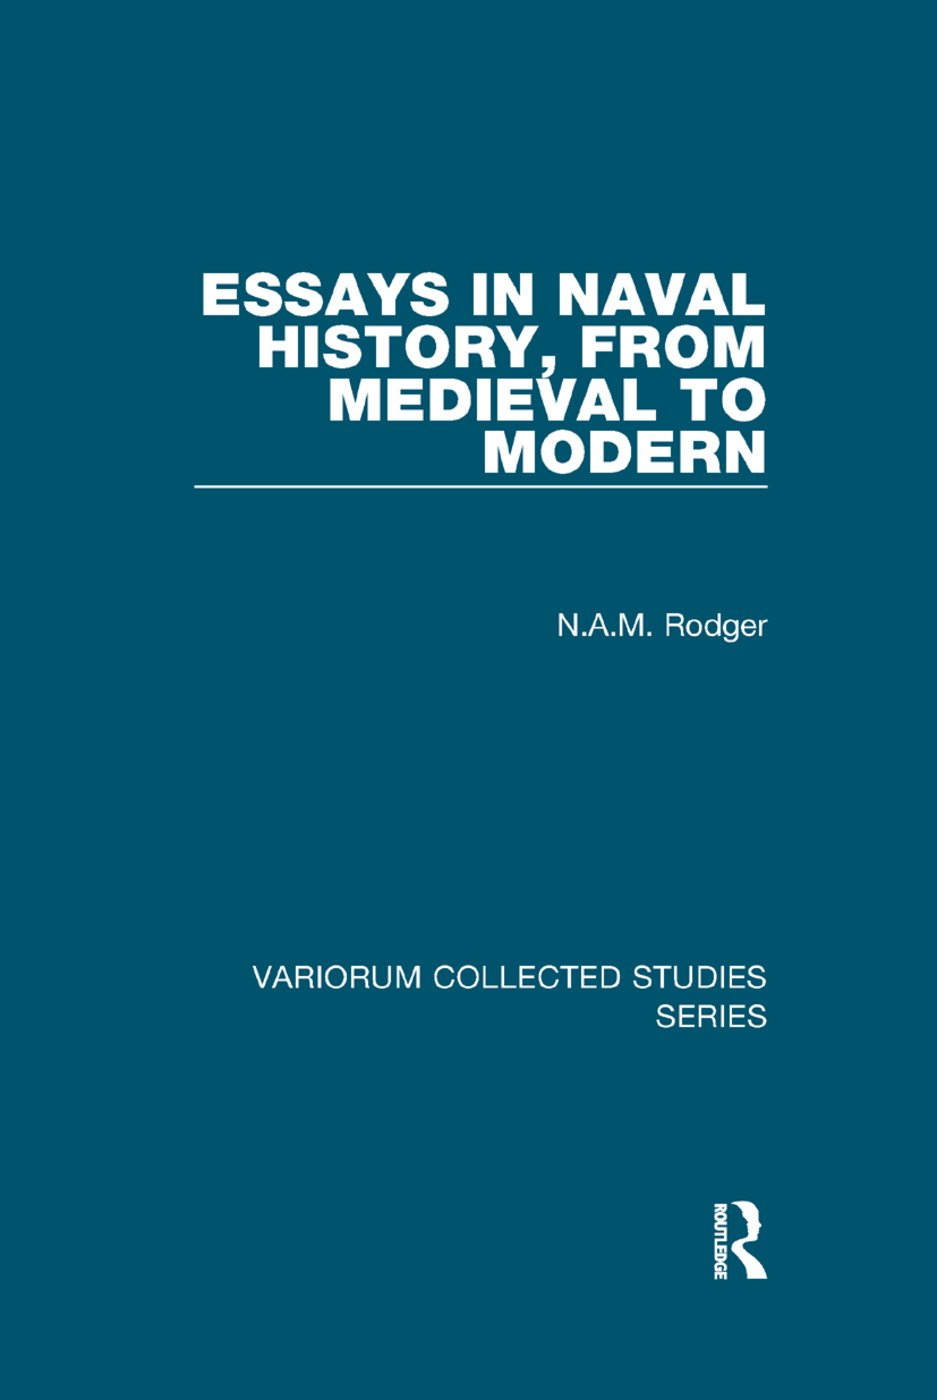 Essays in Naval History, from Medieval to Modern book cover